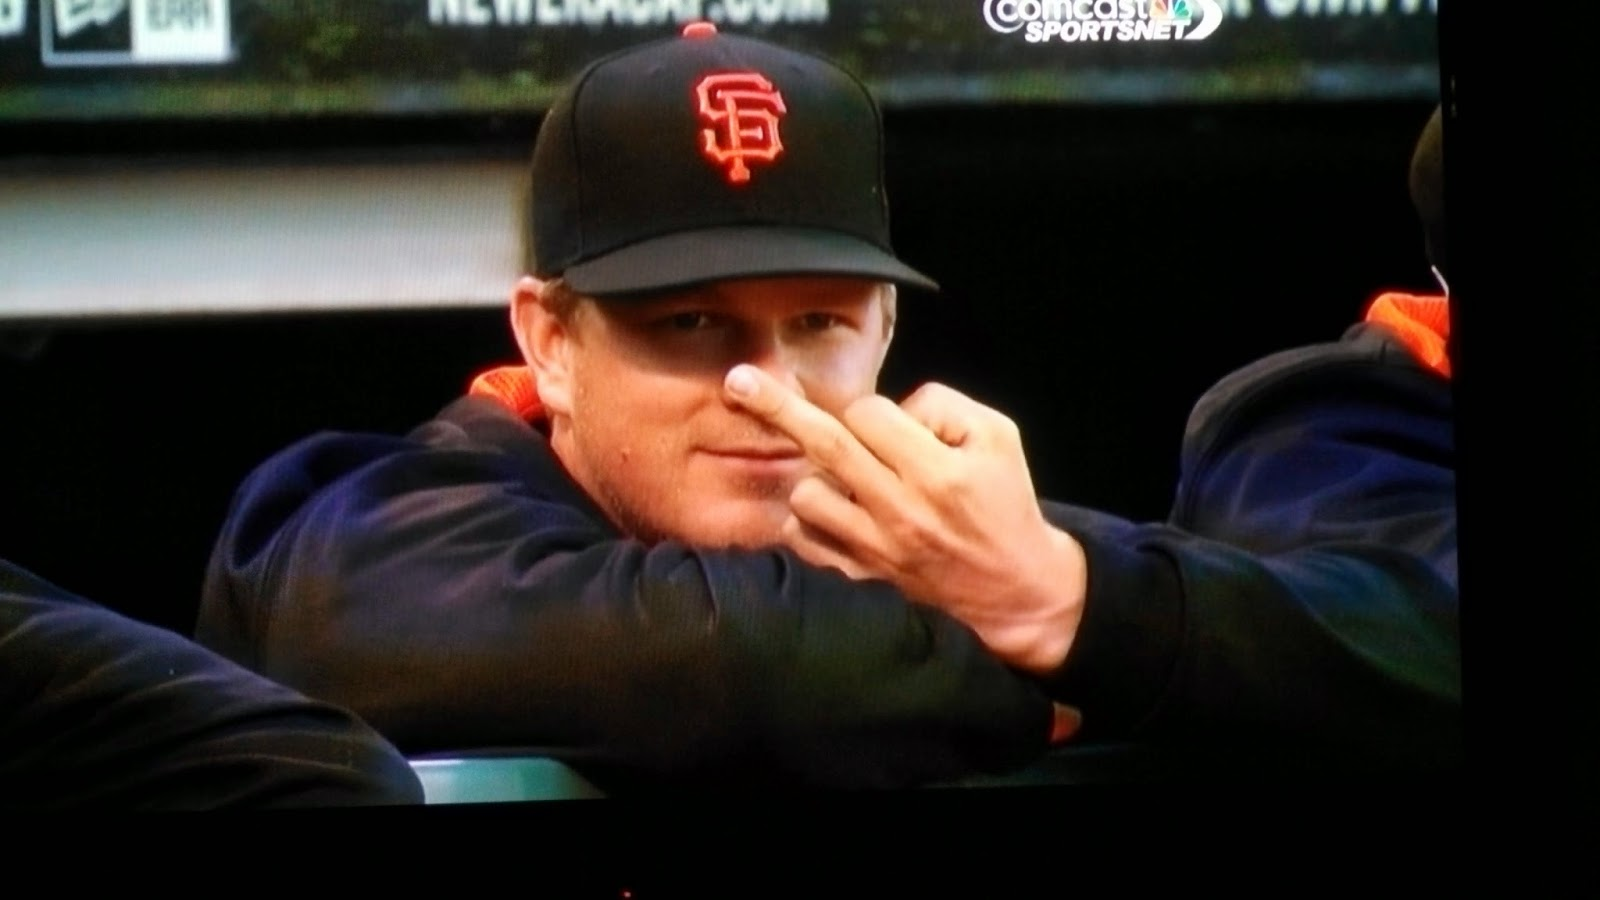 Sons of Steve Garvey: And Now a Message from Matt Cain